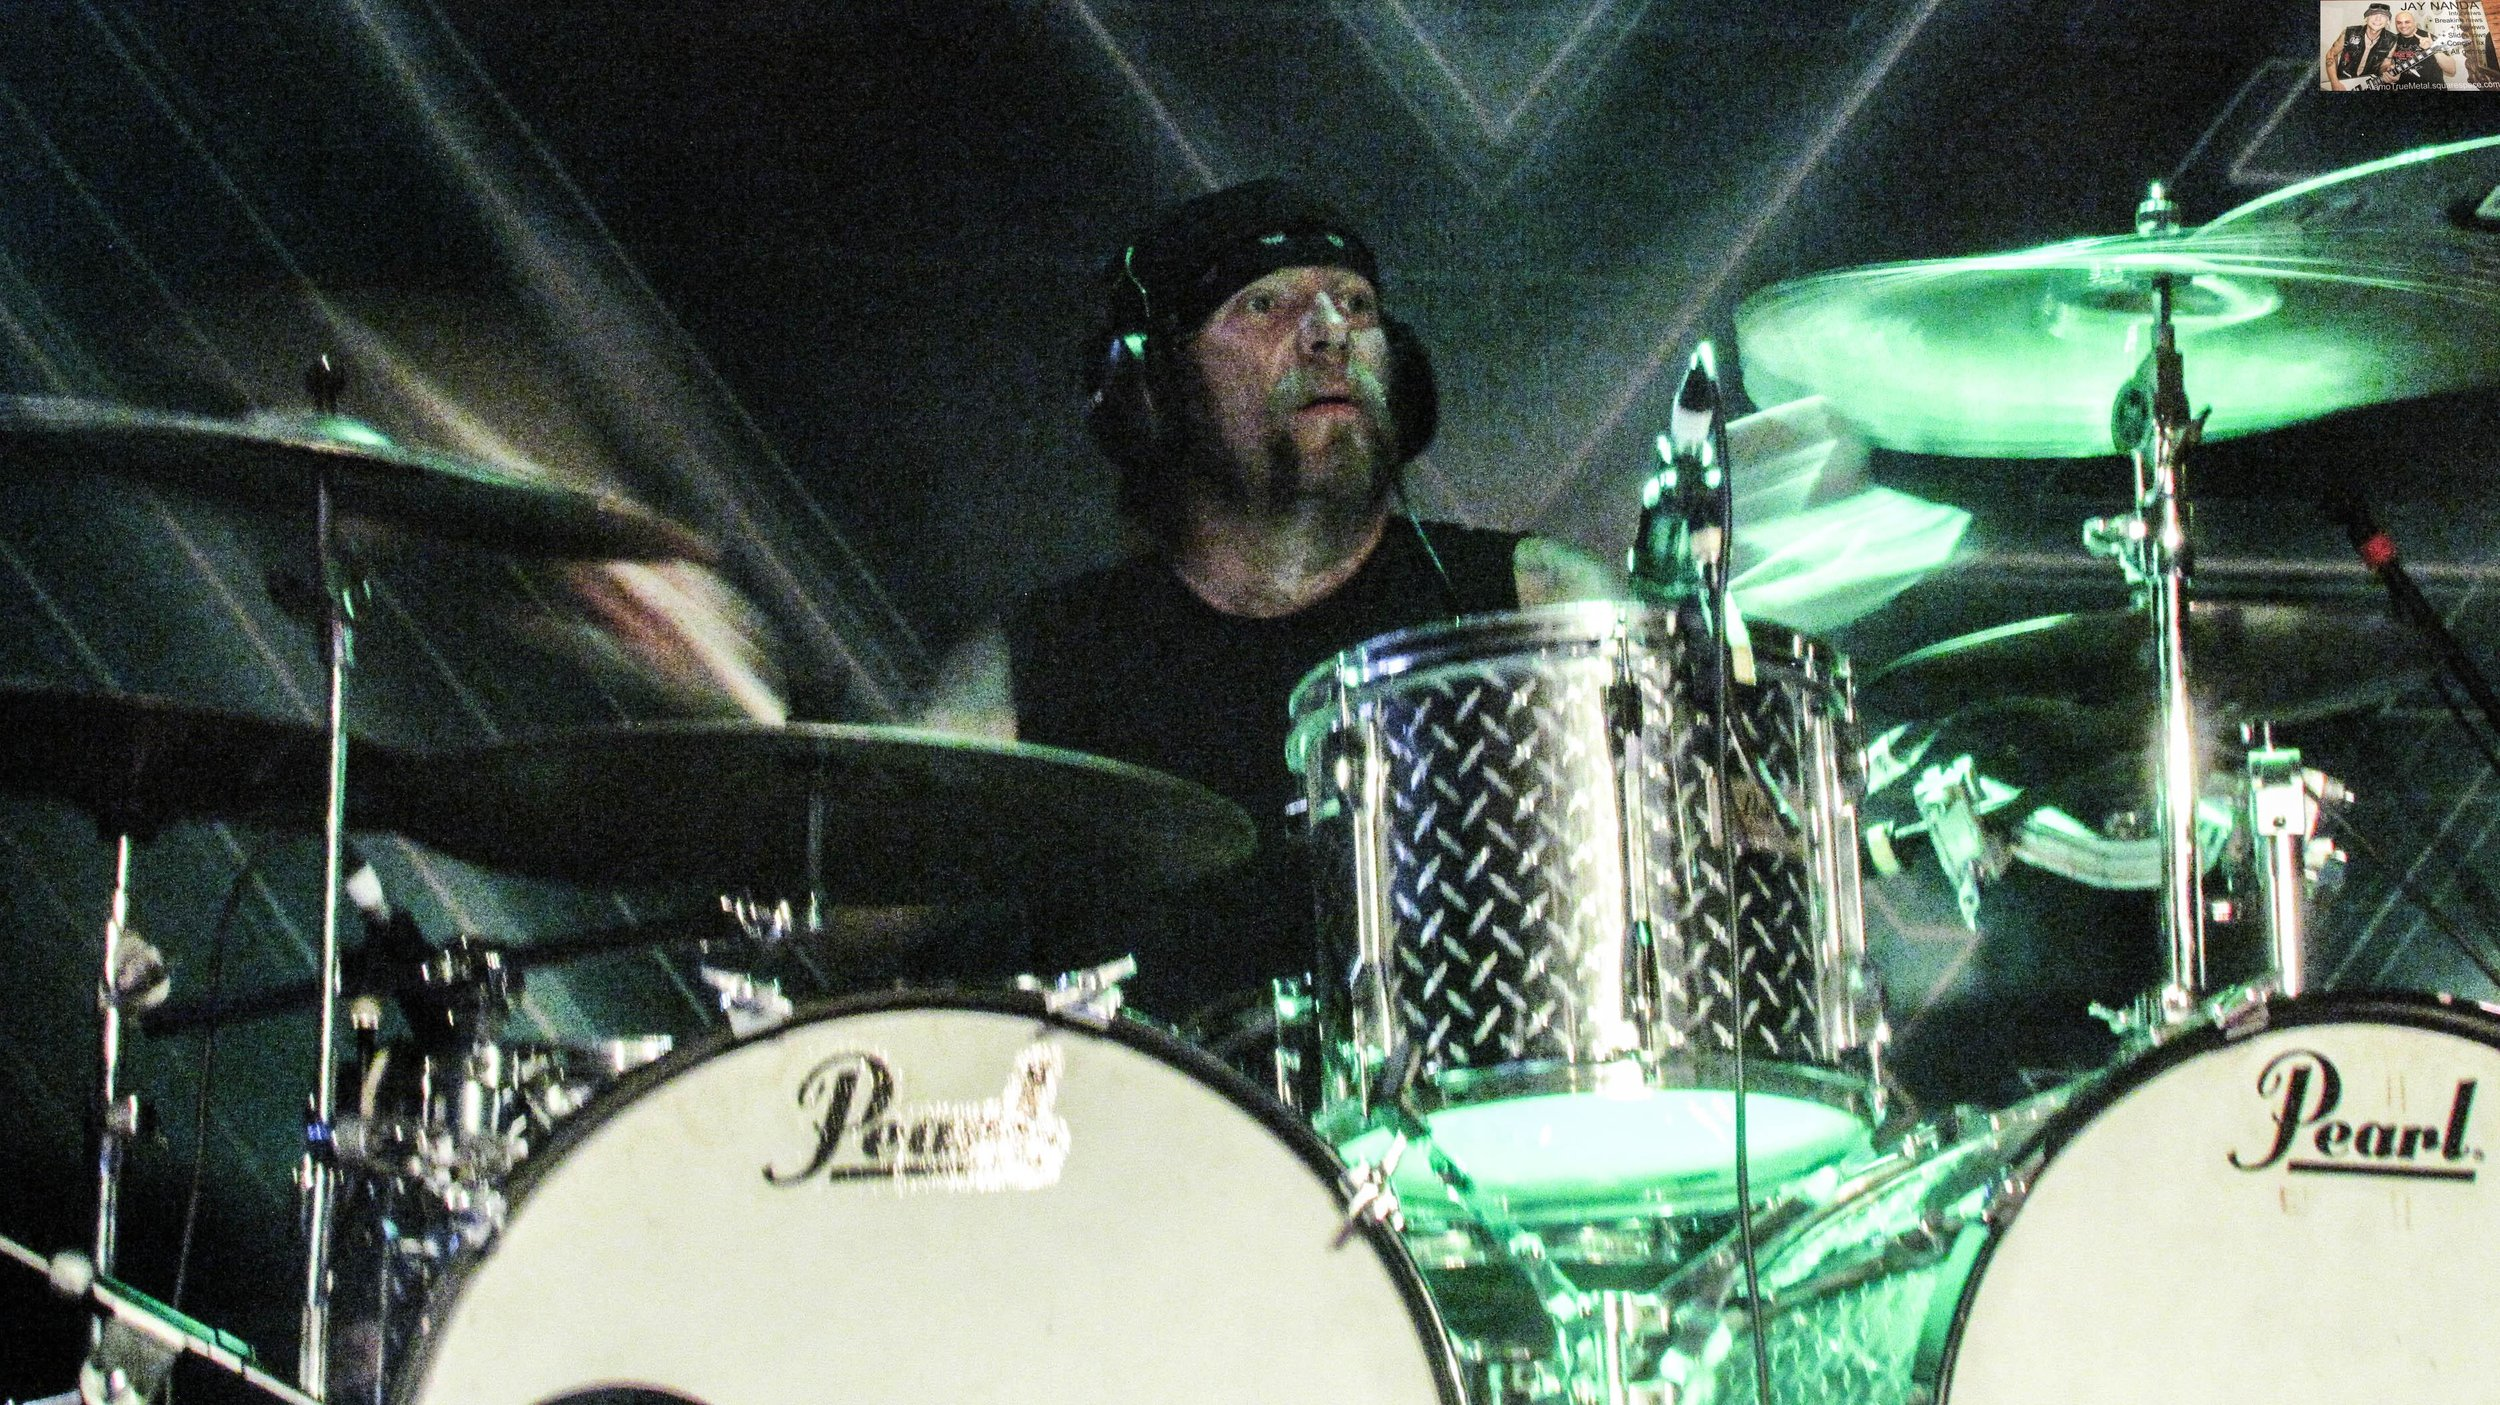 Patrick Johansson, known as being Yngwie Malmsteen's drummer, pulled double duty for Vinnie Moore and Gus G.